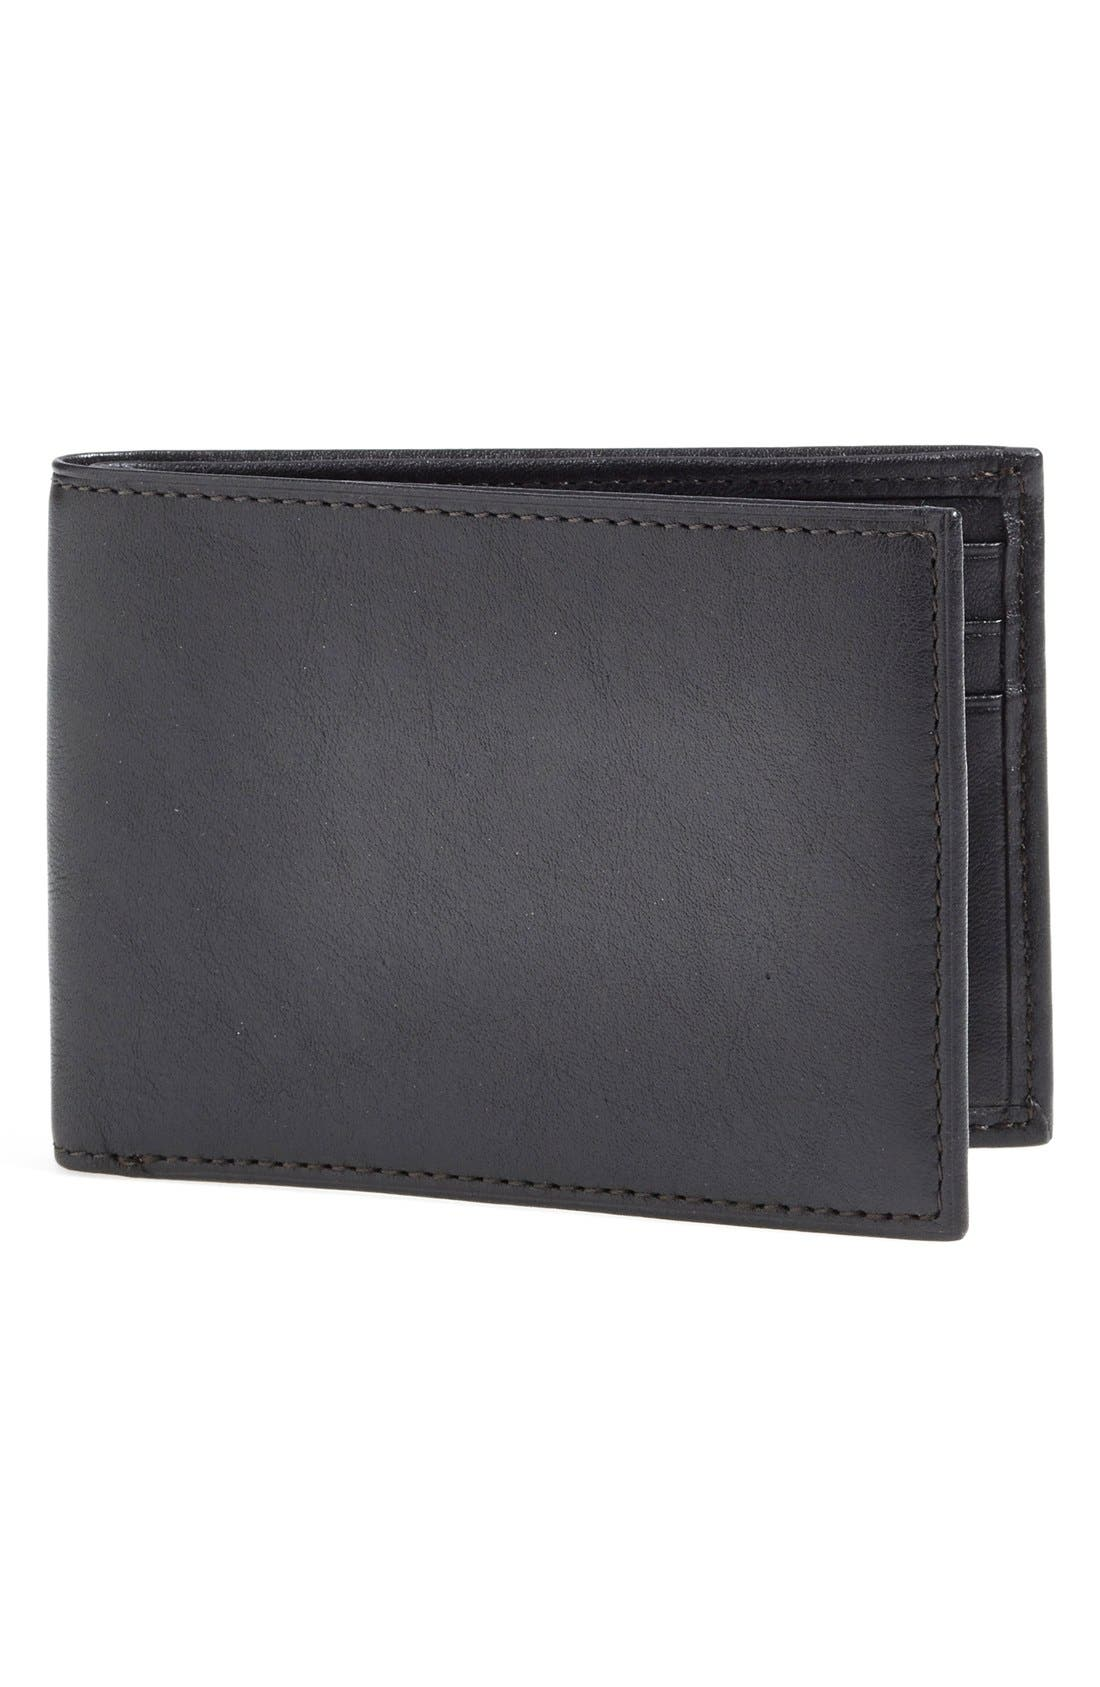 Small Bifold Wallet,                         Main,                         color, 001